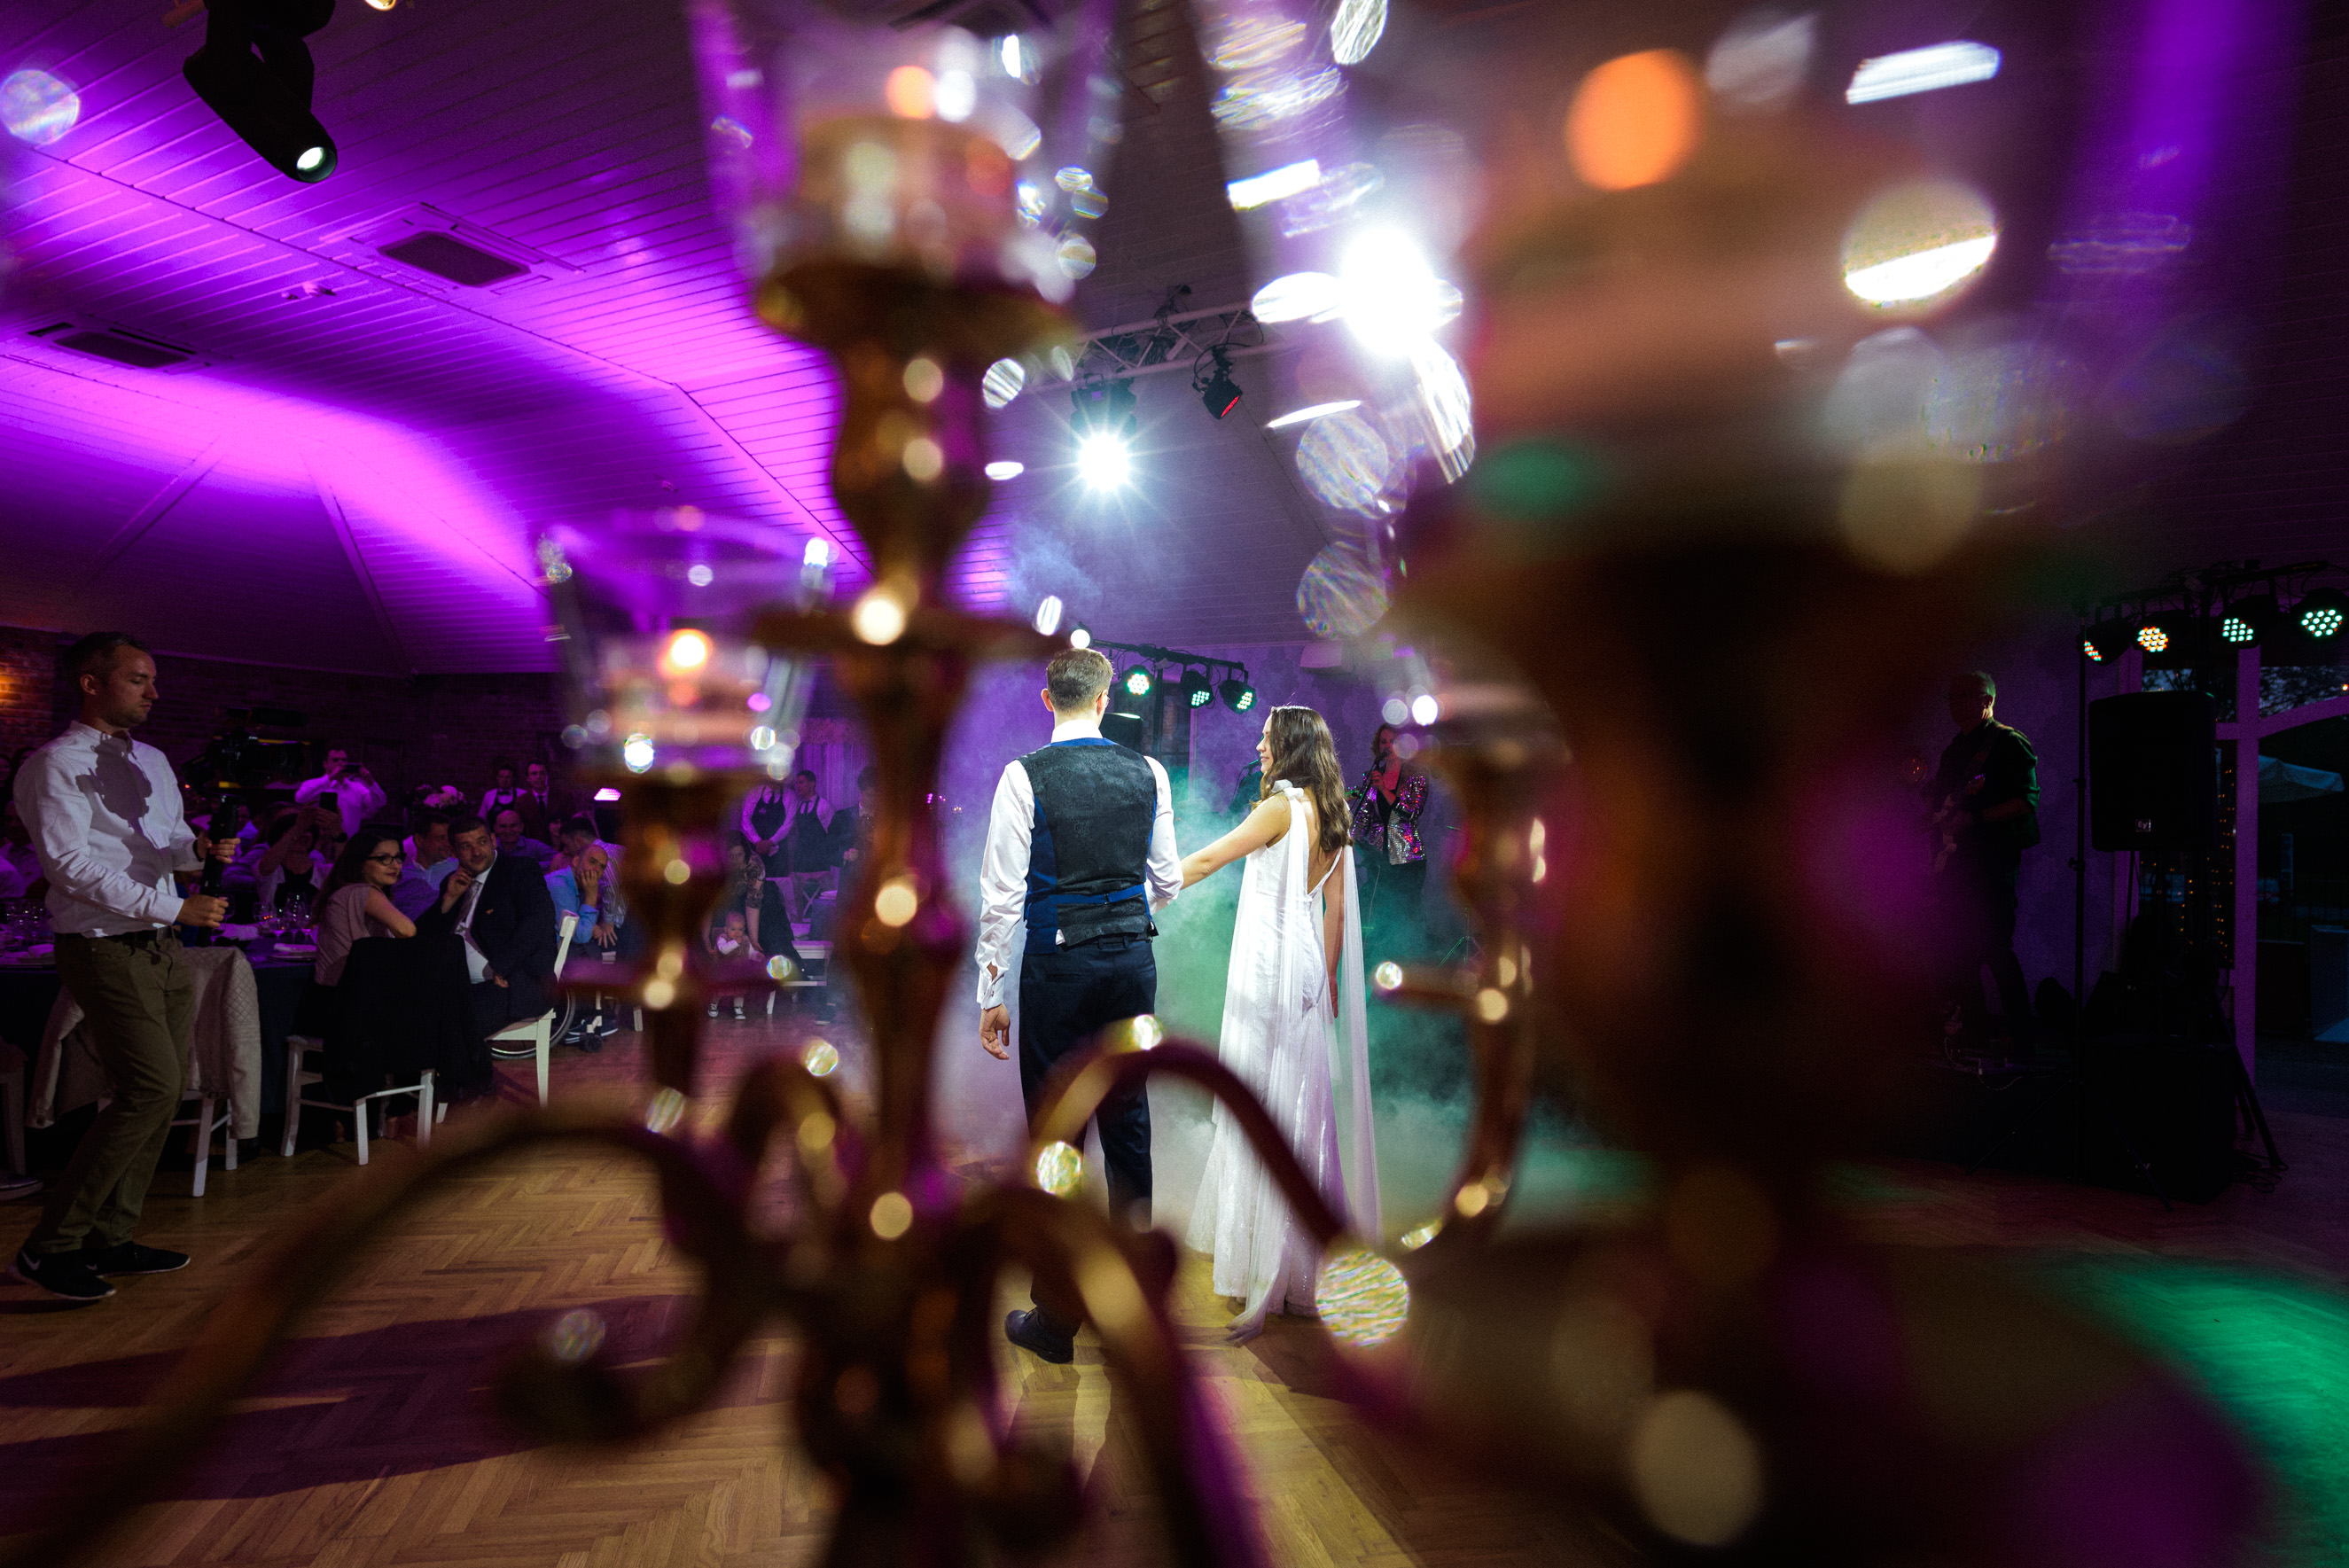 bride and groom dancing their first dance backlight by Promologistika lighting system, shot through candle holders